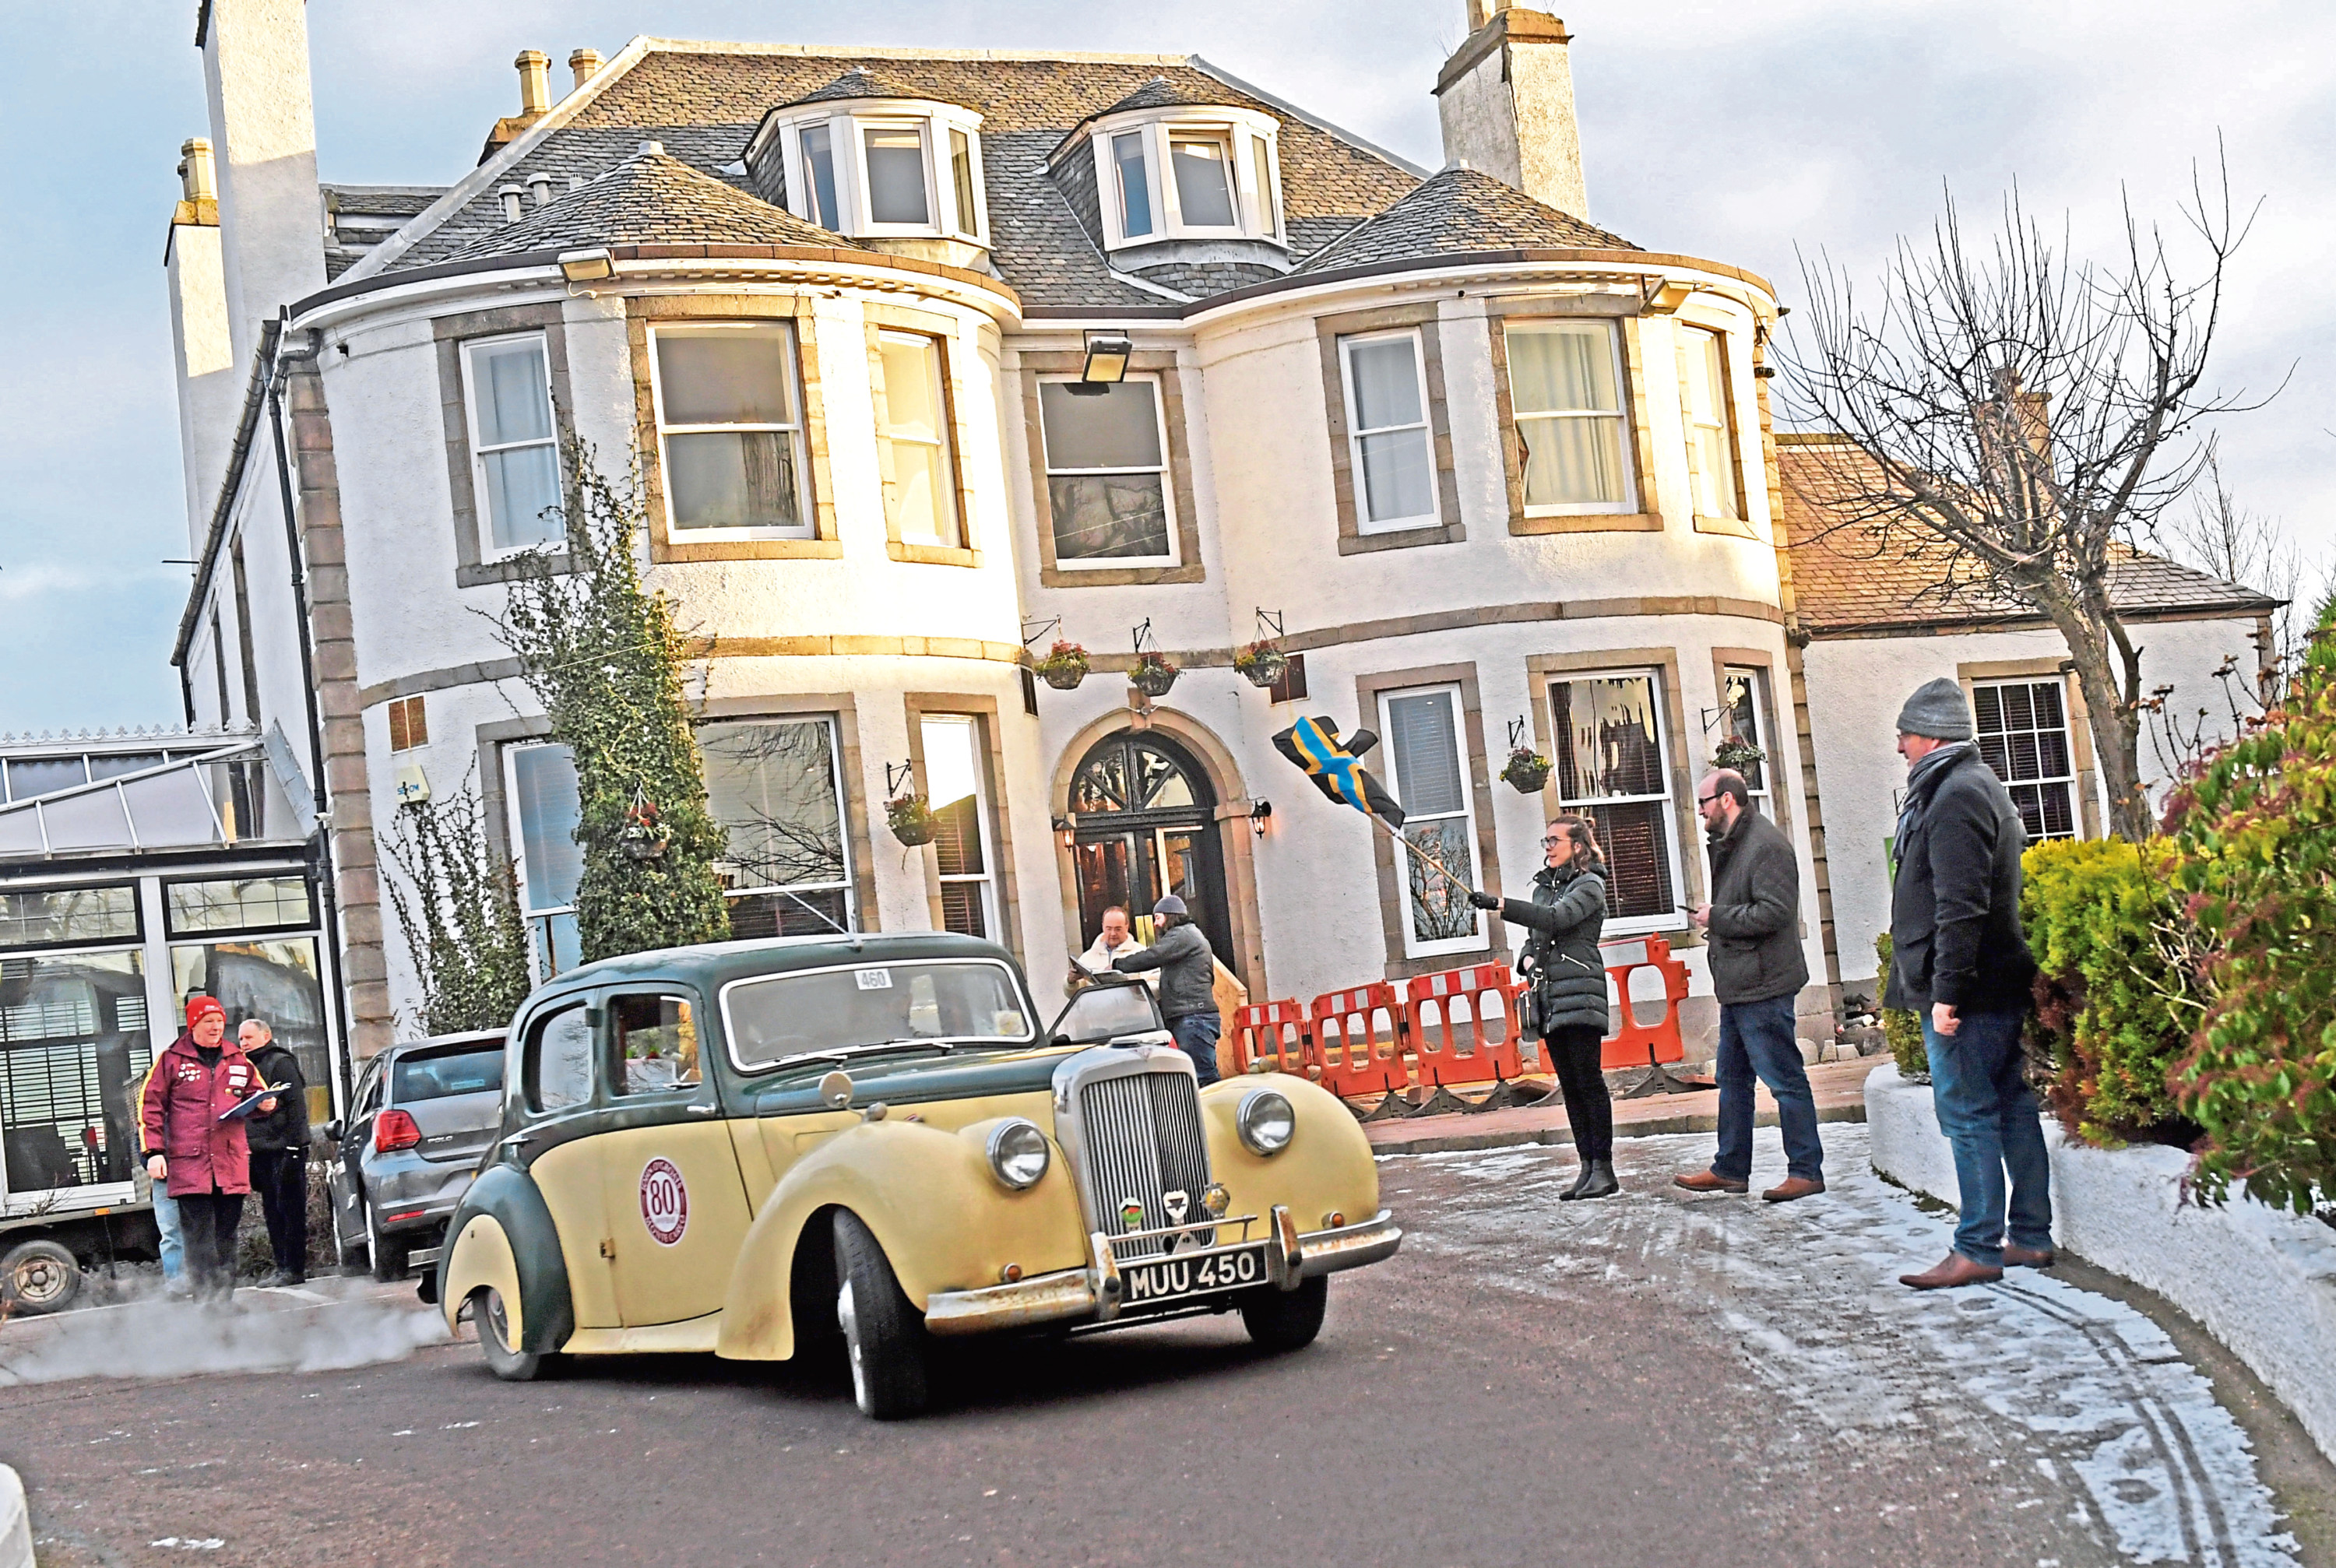 The cars left the Ferryhill Hotel earlier this morning